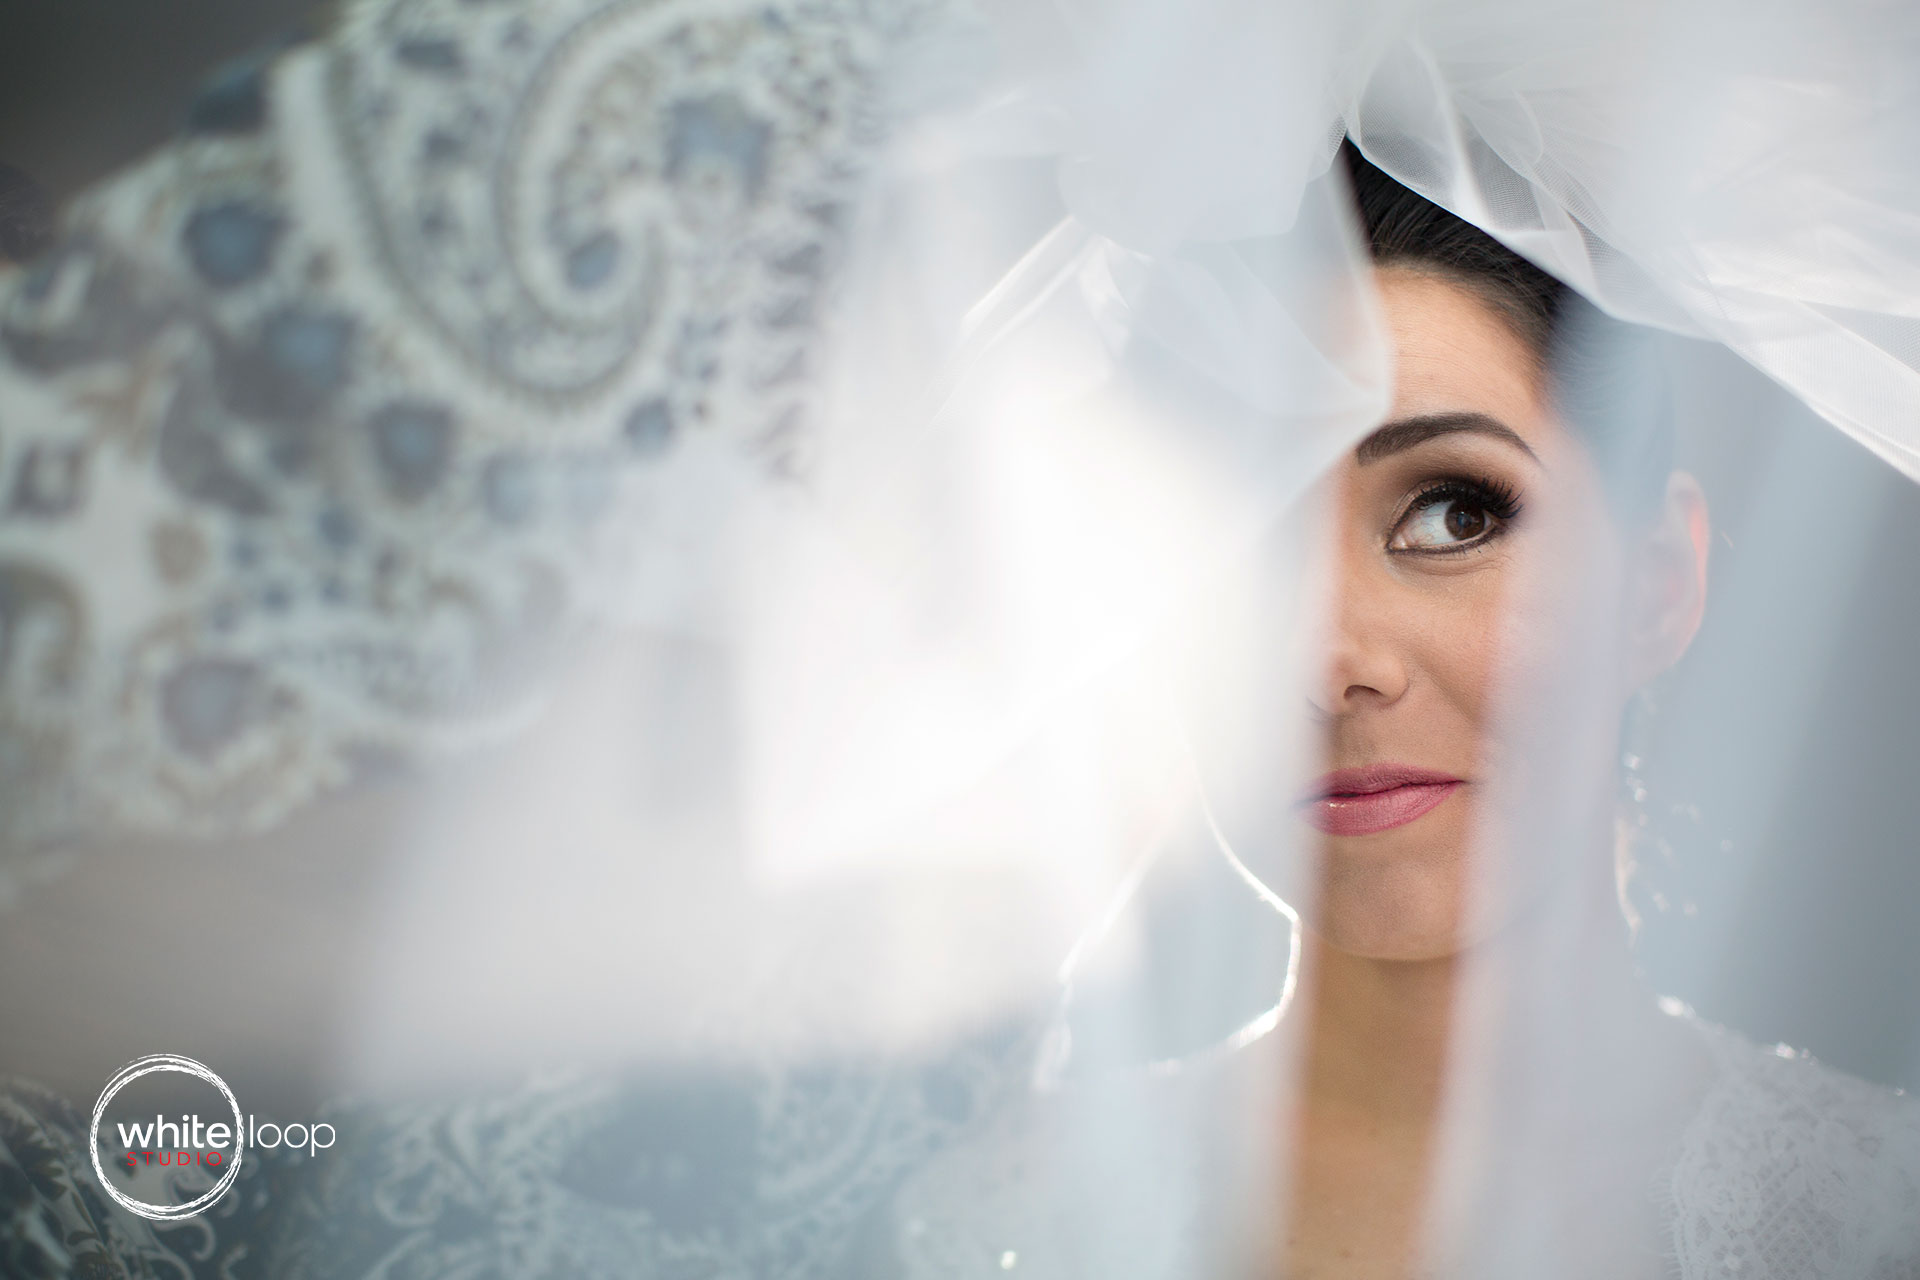 Photographing the beautiful bride under his own veil, taking a different perspective.